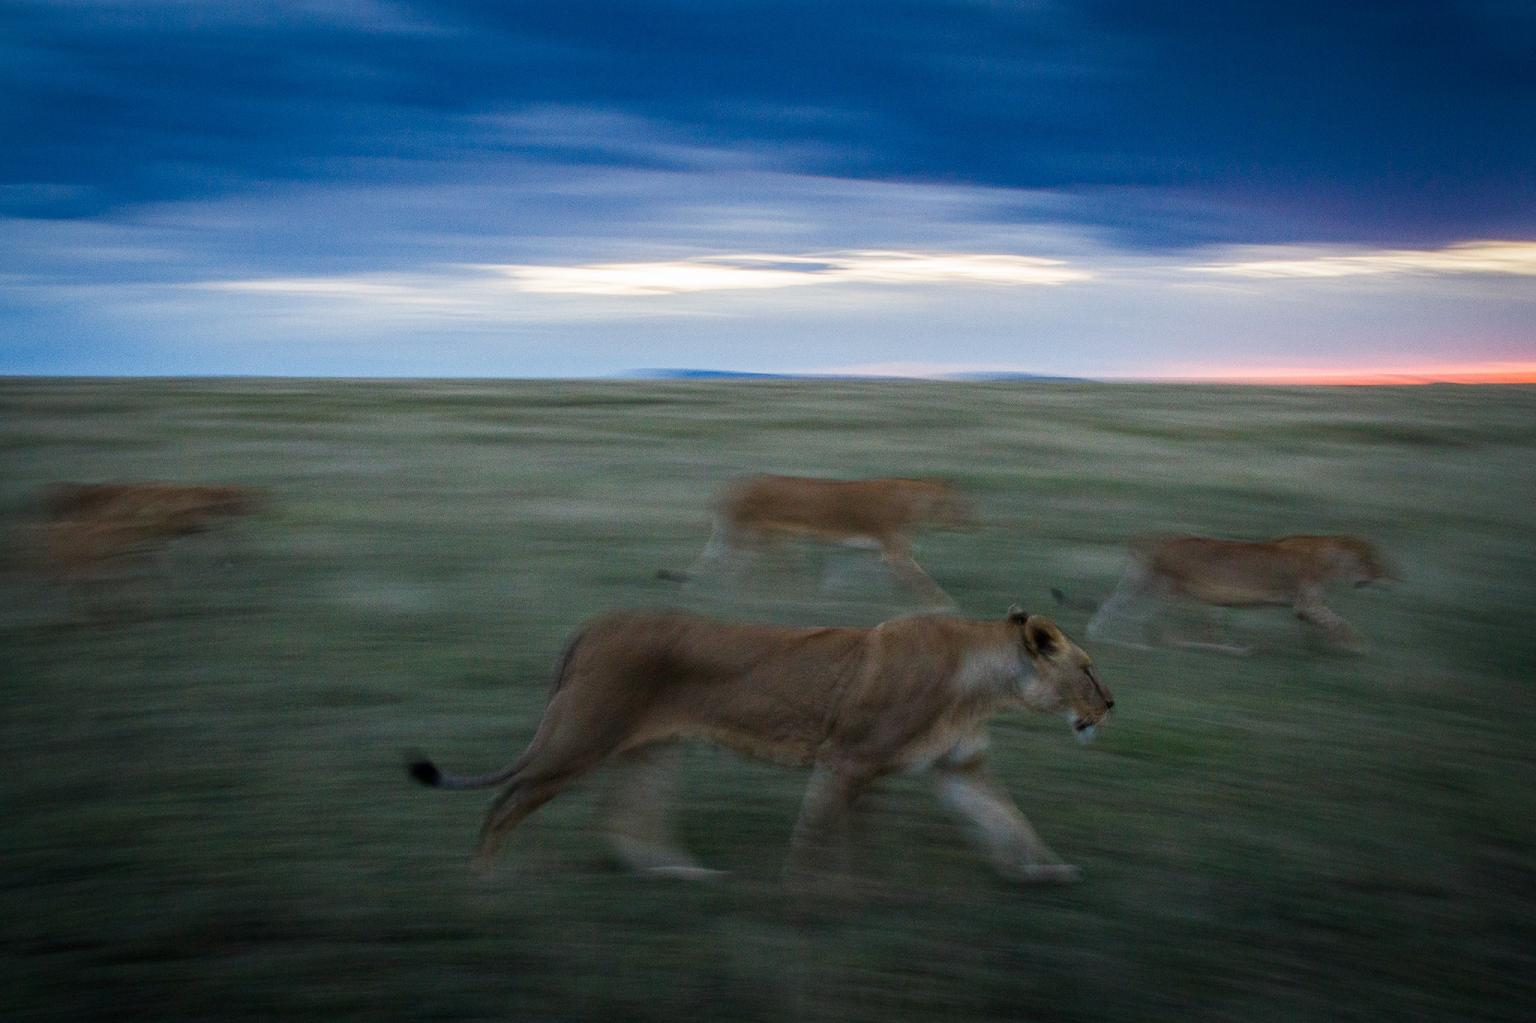 Lions search for prey in Serengeti National Park